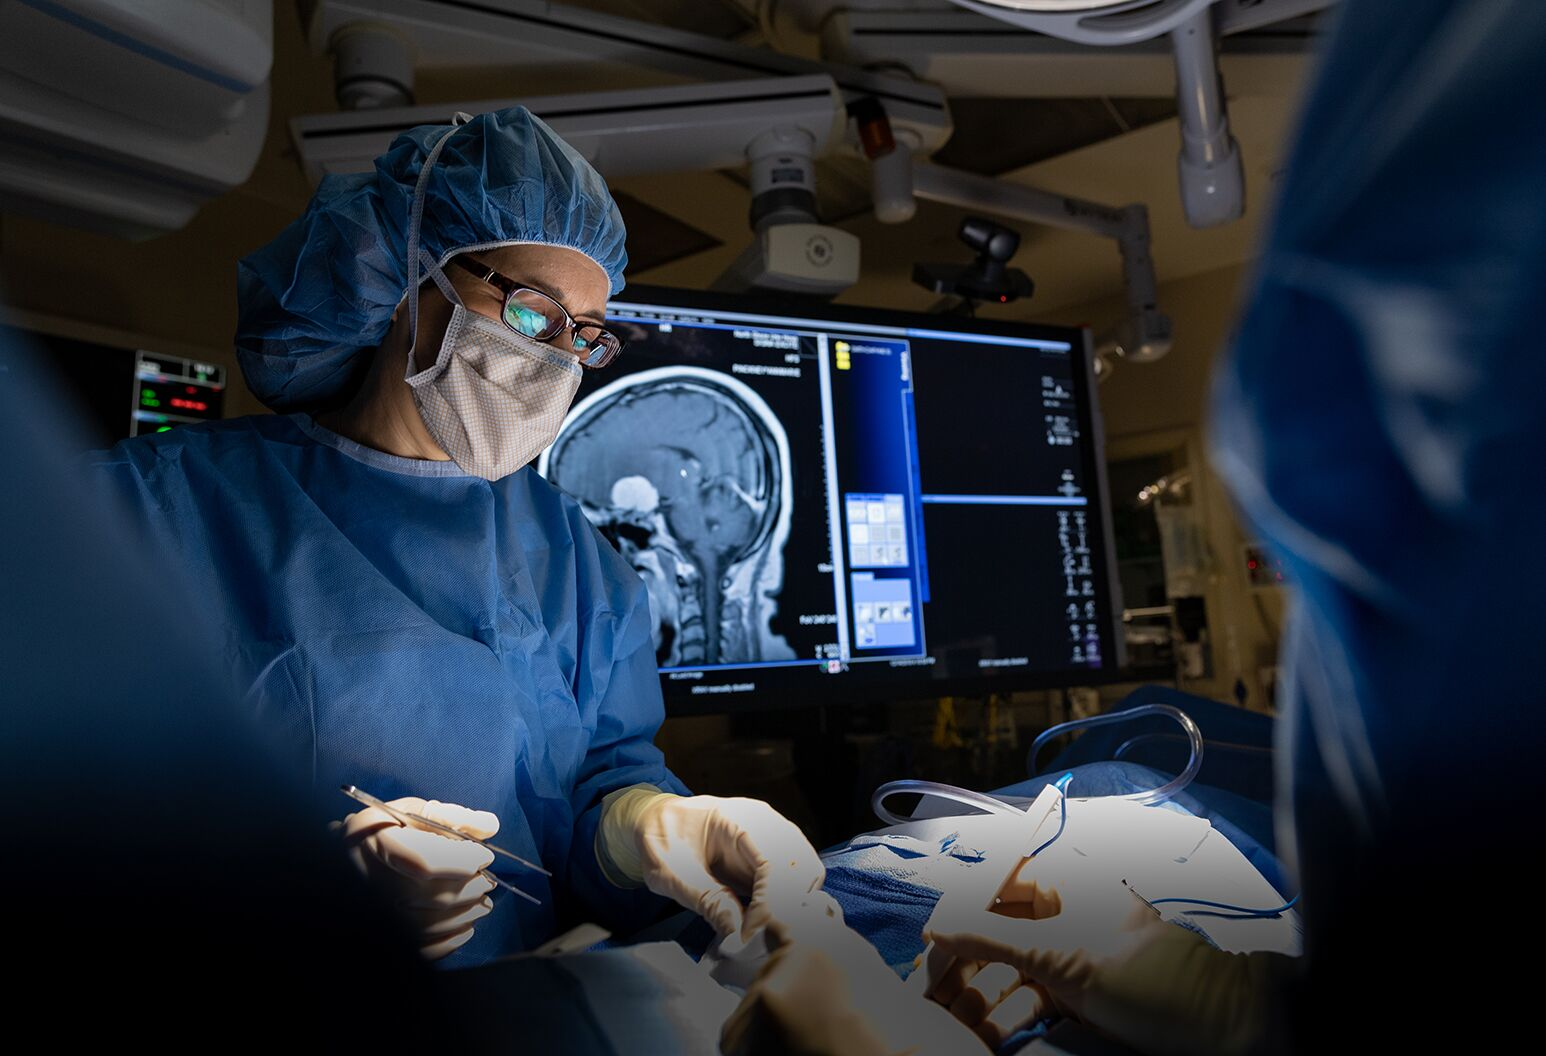 A surgeon wearing a mask and scrubs operates.